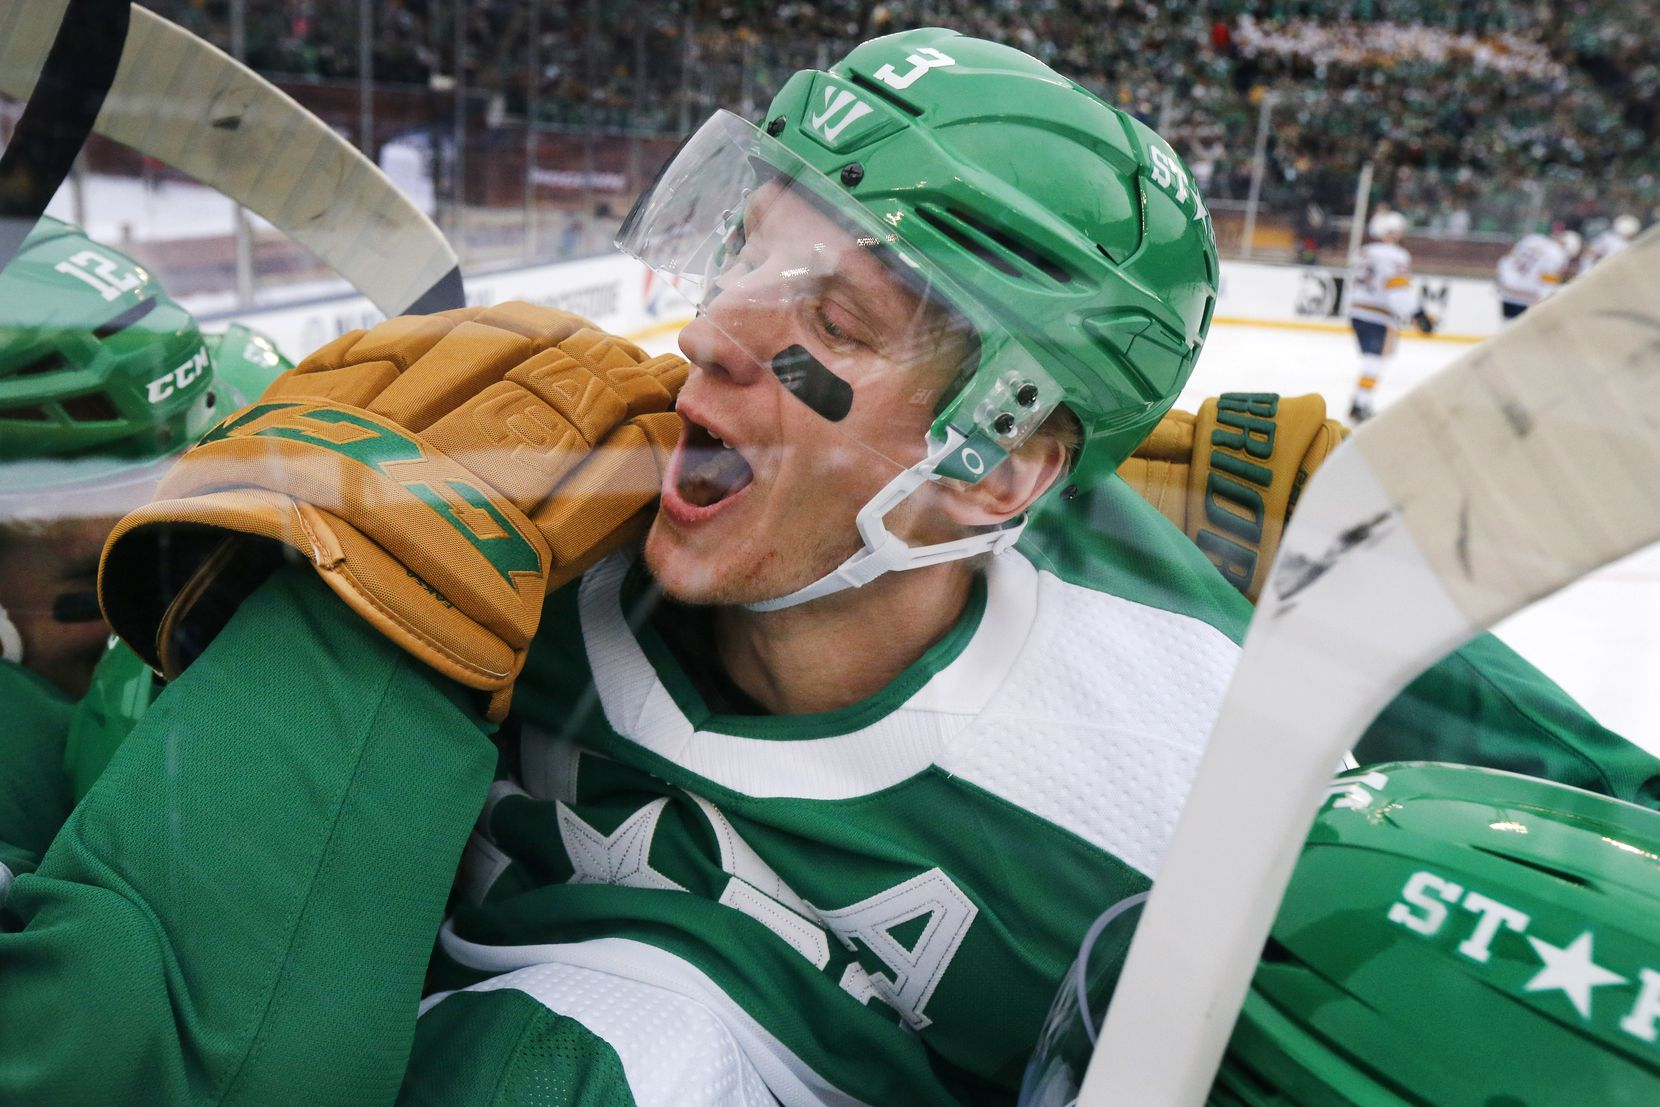 Dallas Stars defenseman John Klingberg (3) joins the celebration after Andrej Sekera scored during the third period of the NHL Winter Classic hockey game at the Cotton Bowl in Dallas, Wednesday, January 1, 2020. The Stars came back to win, 4-2.